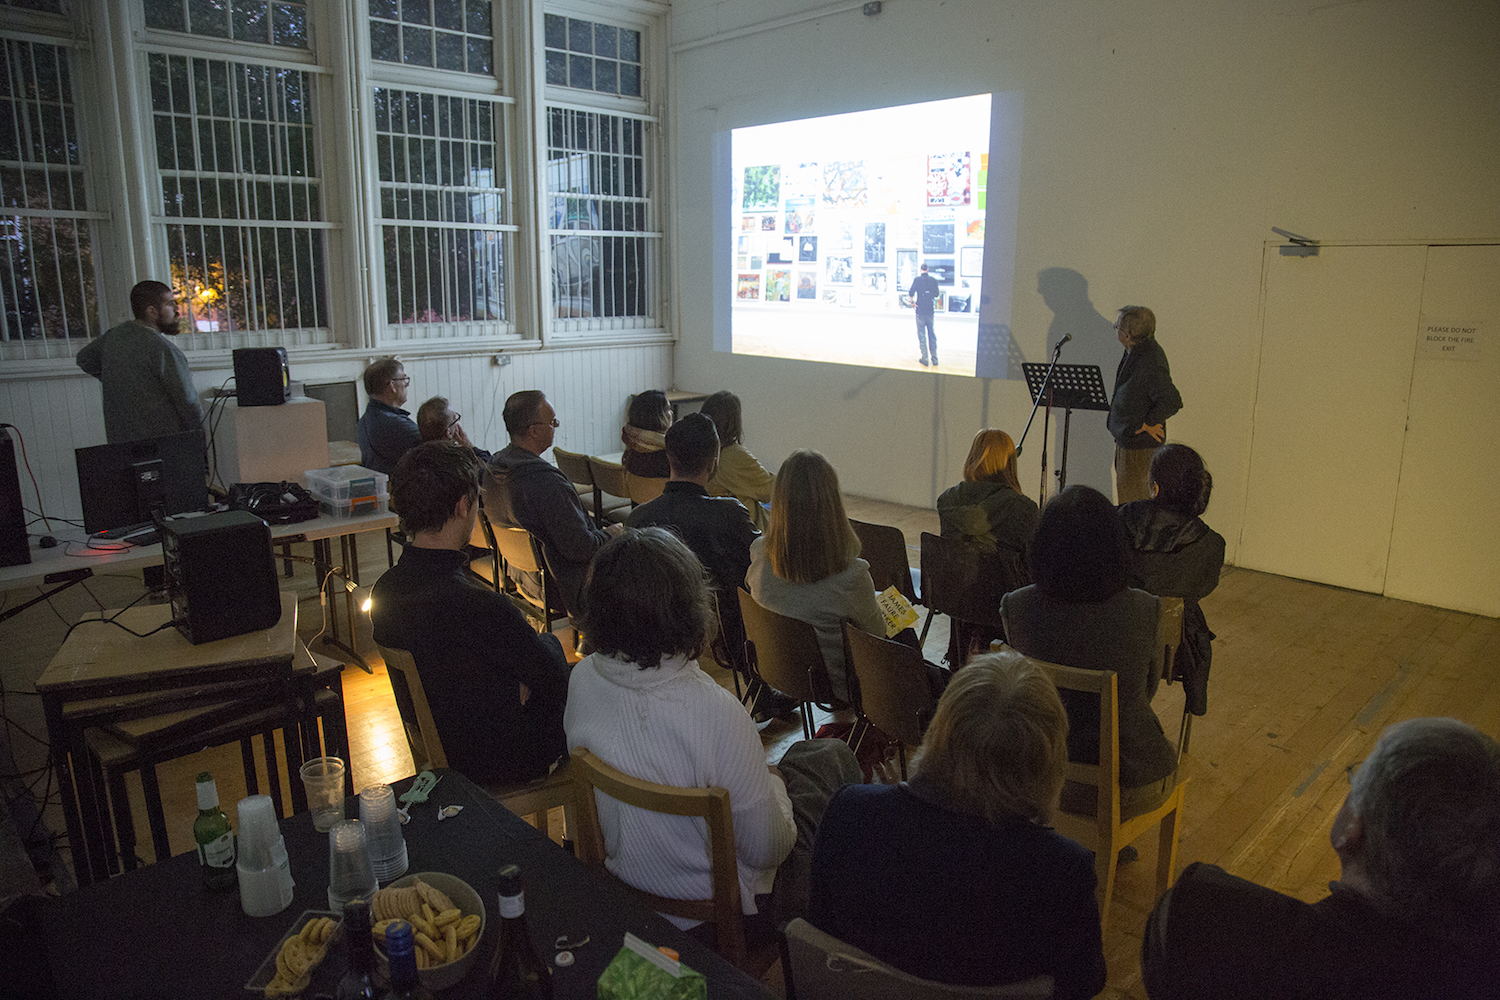 James Faure Walker Artist Talk at Holyhead Studios as part of his solo exhibition at Class Room, 2017. Photo: Emily Jones